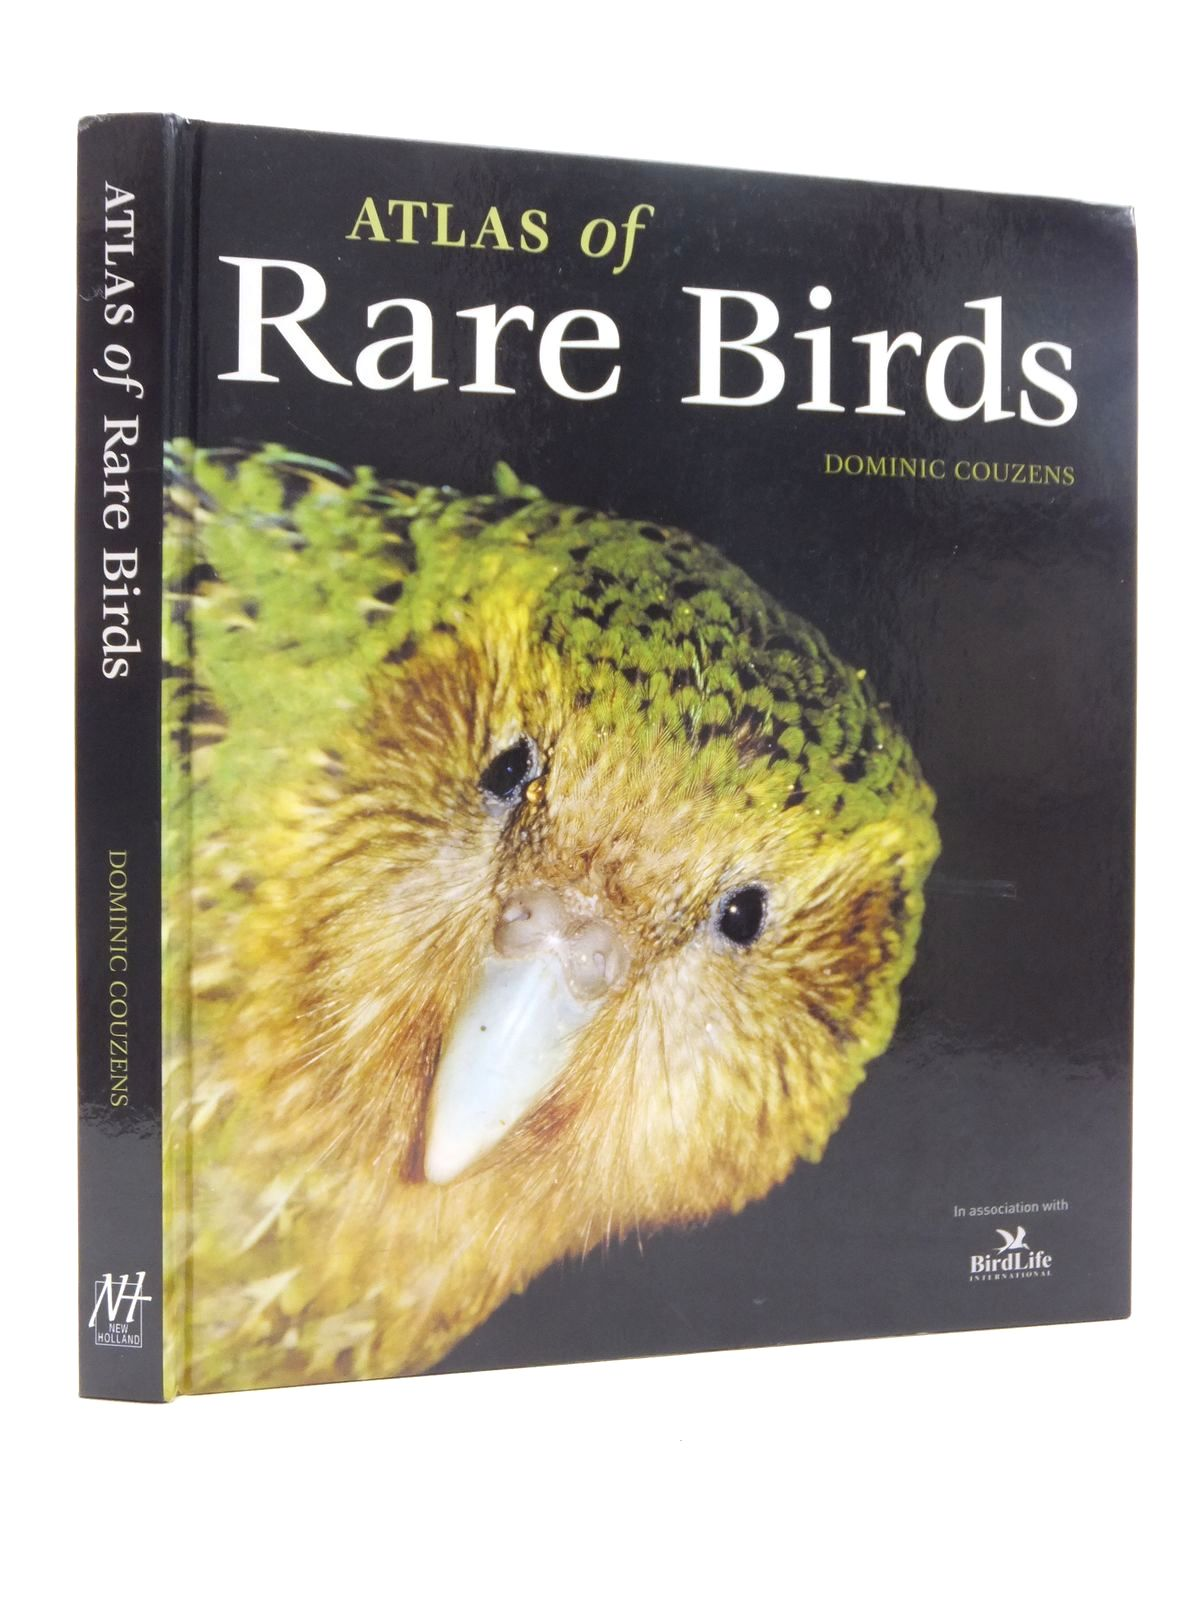 Photo of ATLAS OF RARE BIRDS written by Couzens, Dominic published by New Holland, Birdlife International (STOCK CODE: 1610034)  for sale by Stella & Rose's Books